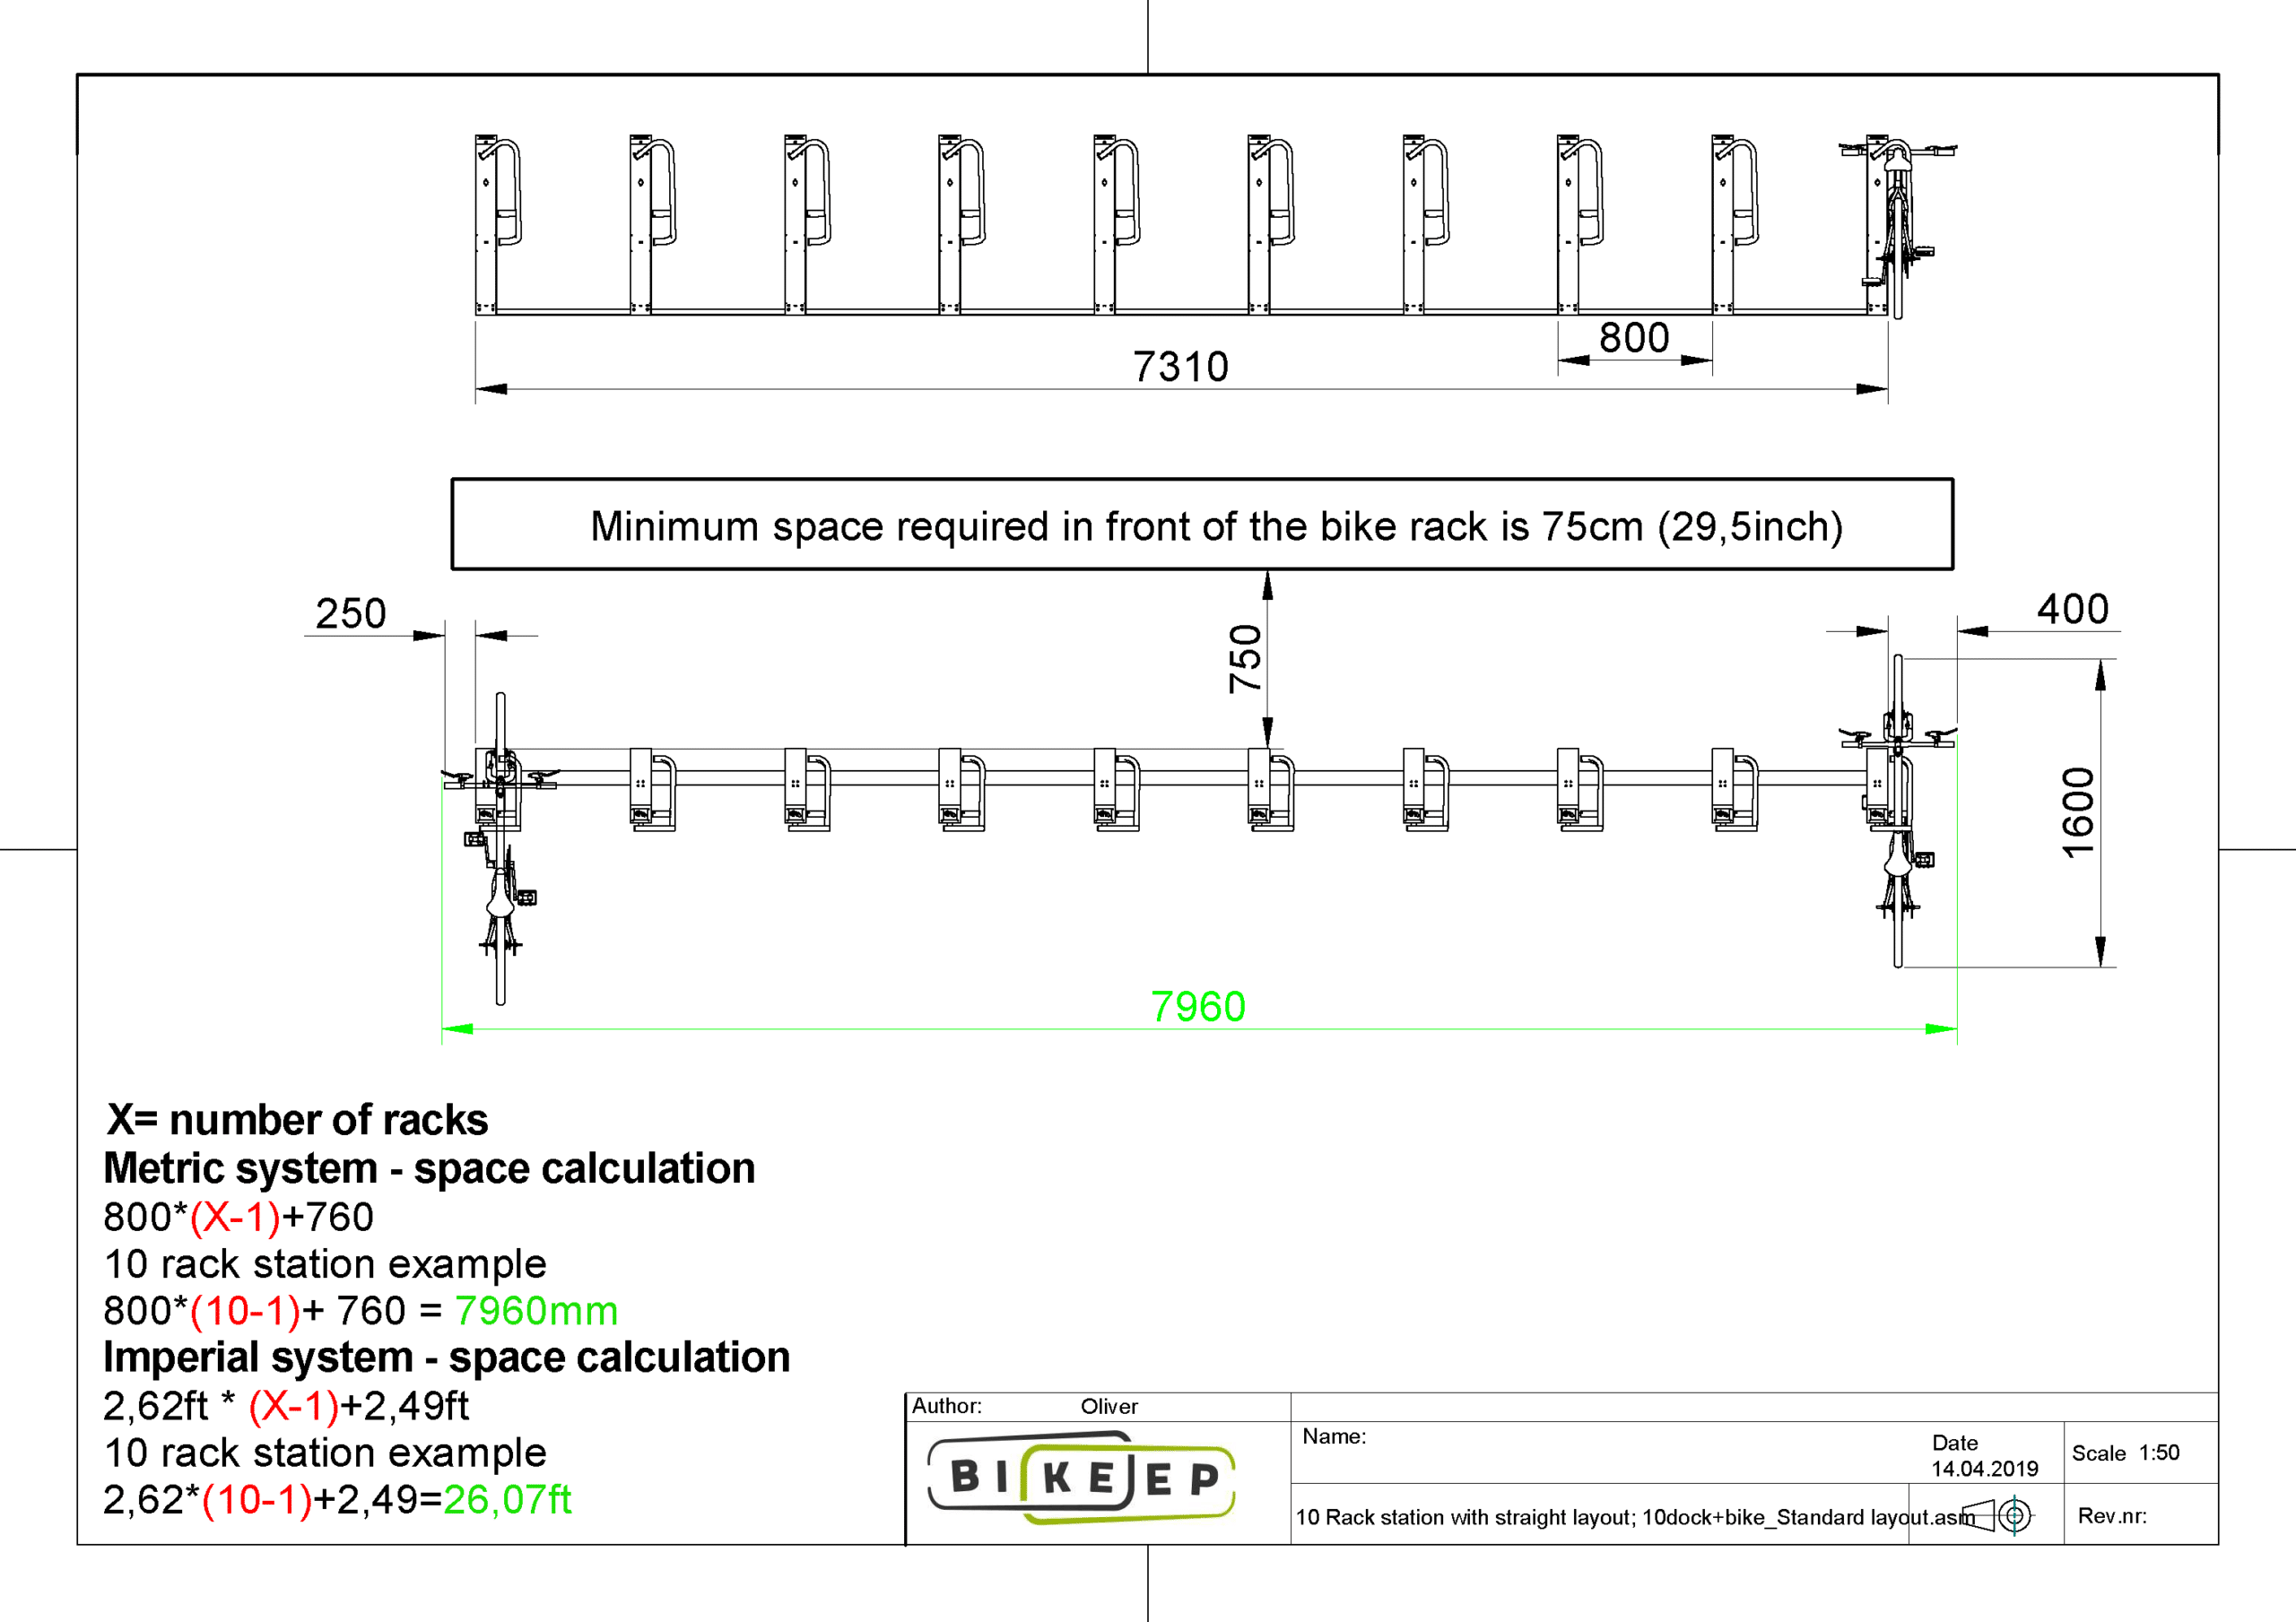 10 Rack station with straight layout